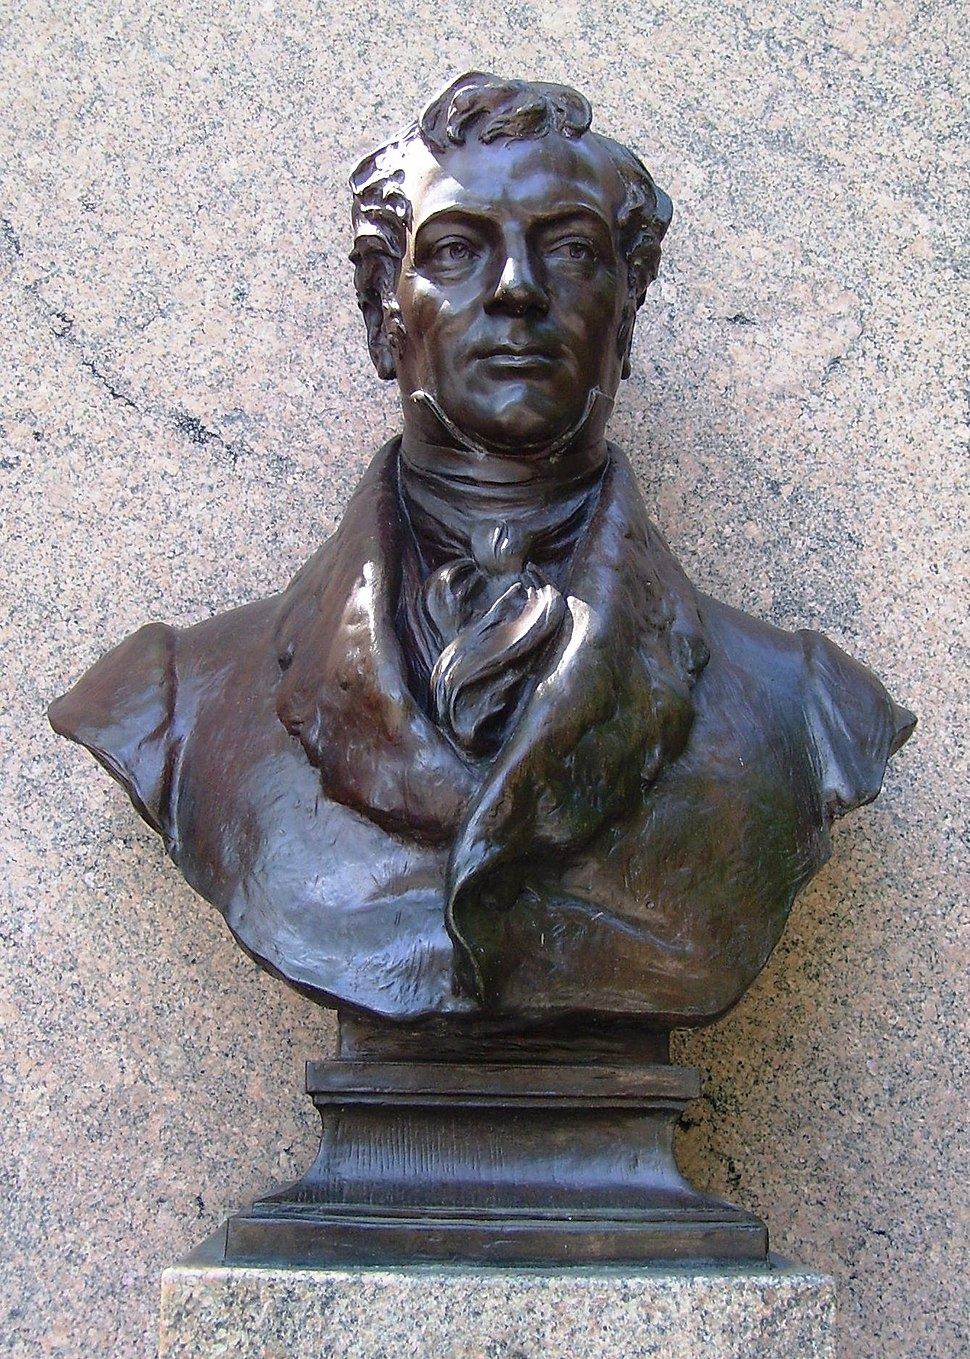 Washington Irving Memorial Irvington Washington Irving bust